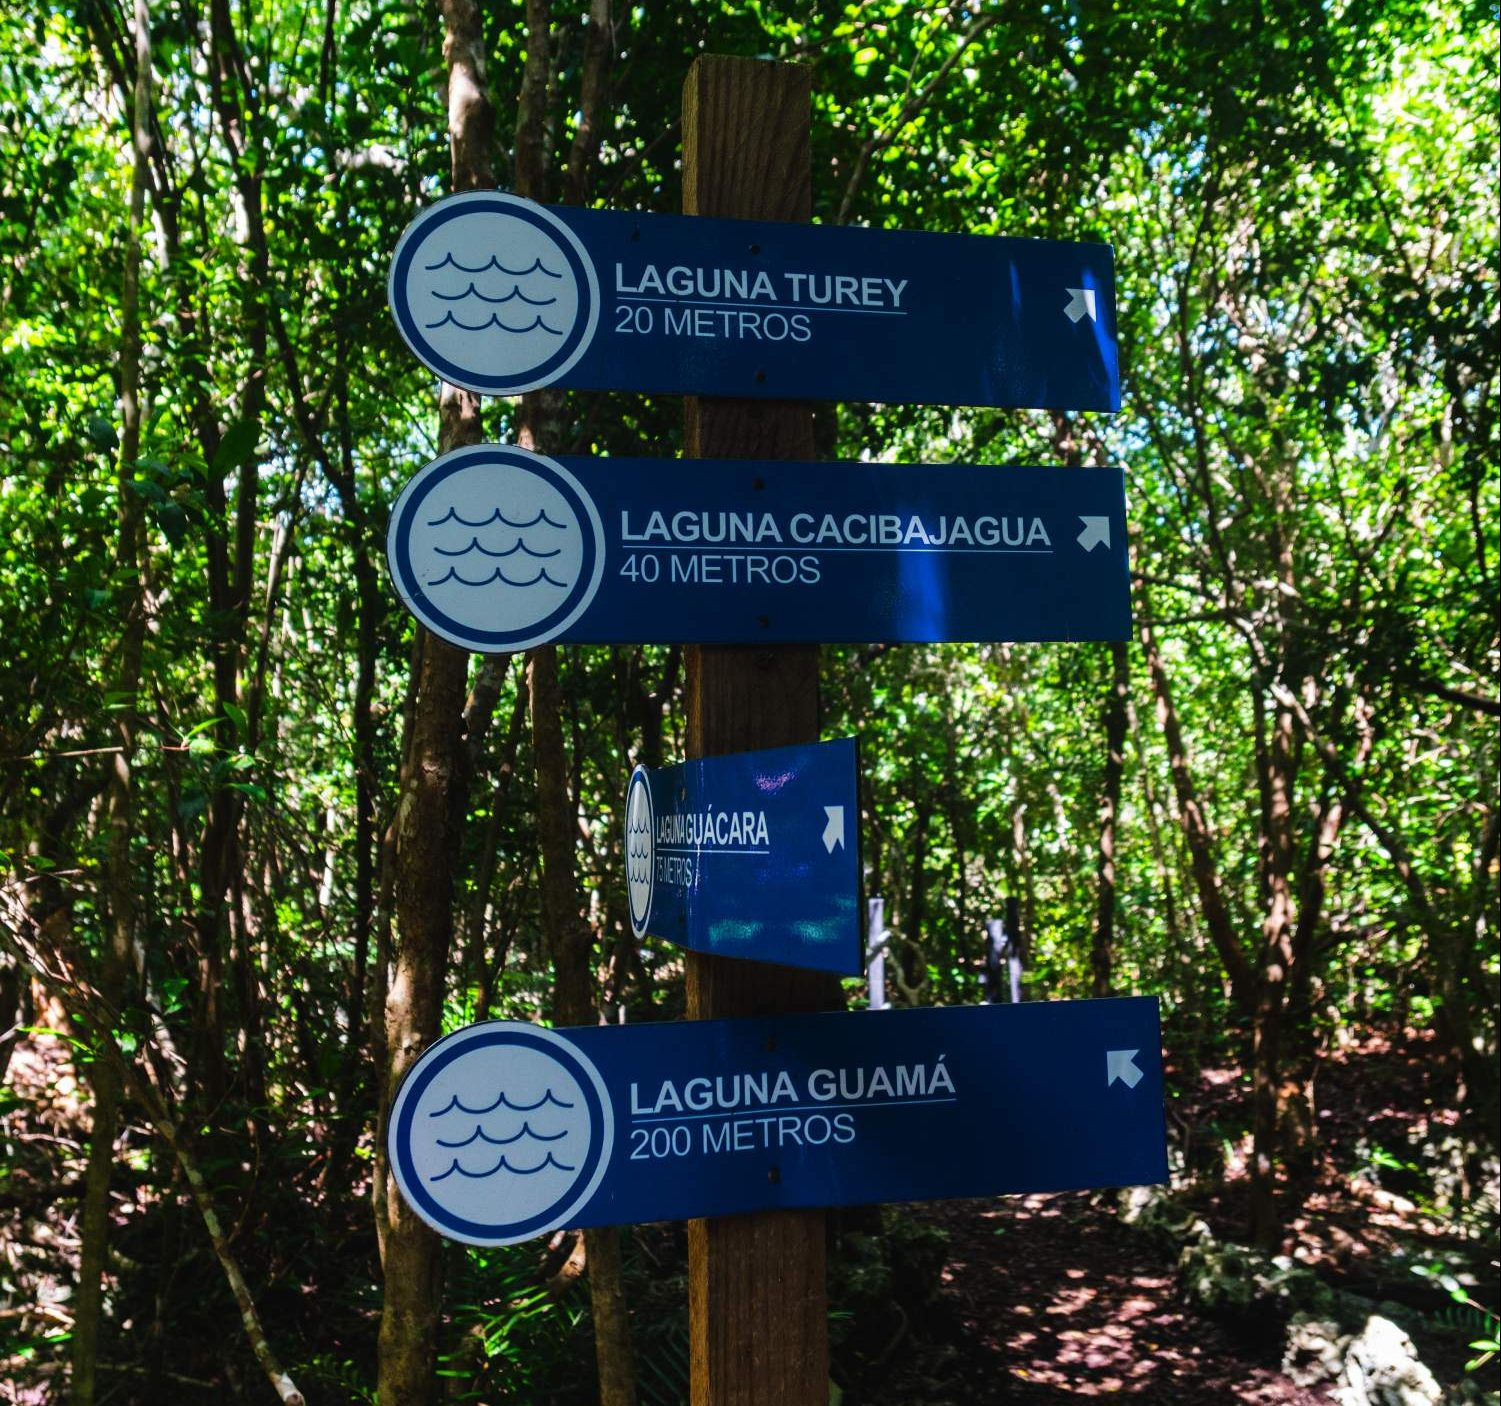 Directions to lagunas at the Indigenous Eyes Ecological Park and Reserve in Dominican Republic